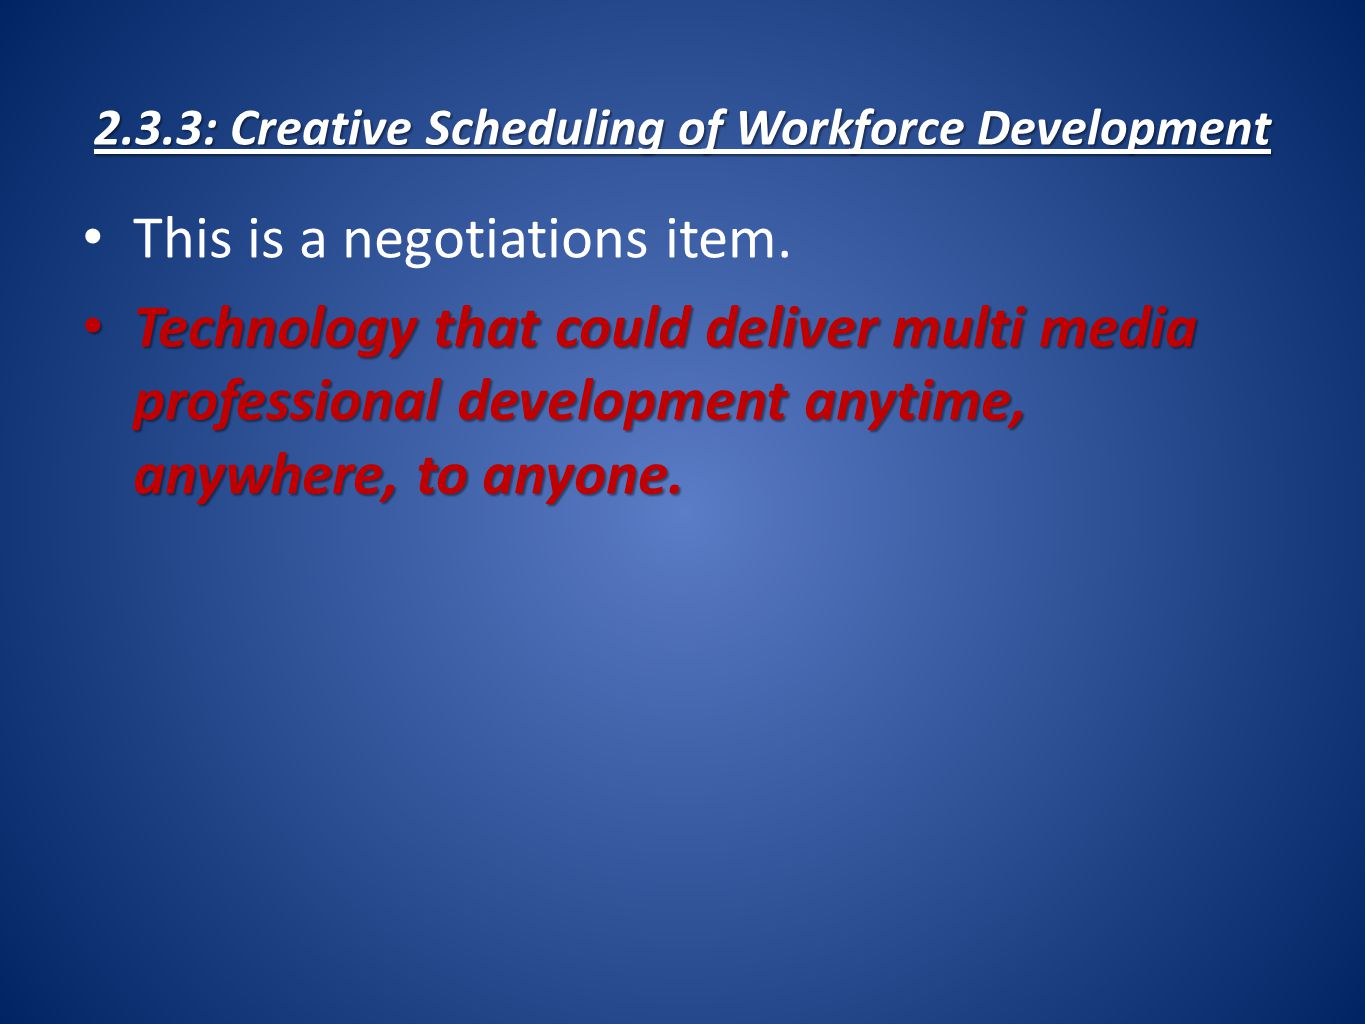 2.3.3: Creative Scheduling of Workforce Development This is a negotiations item. Technology that could deliver multi media professional development an